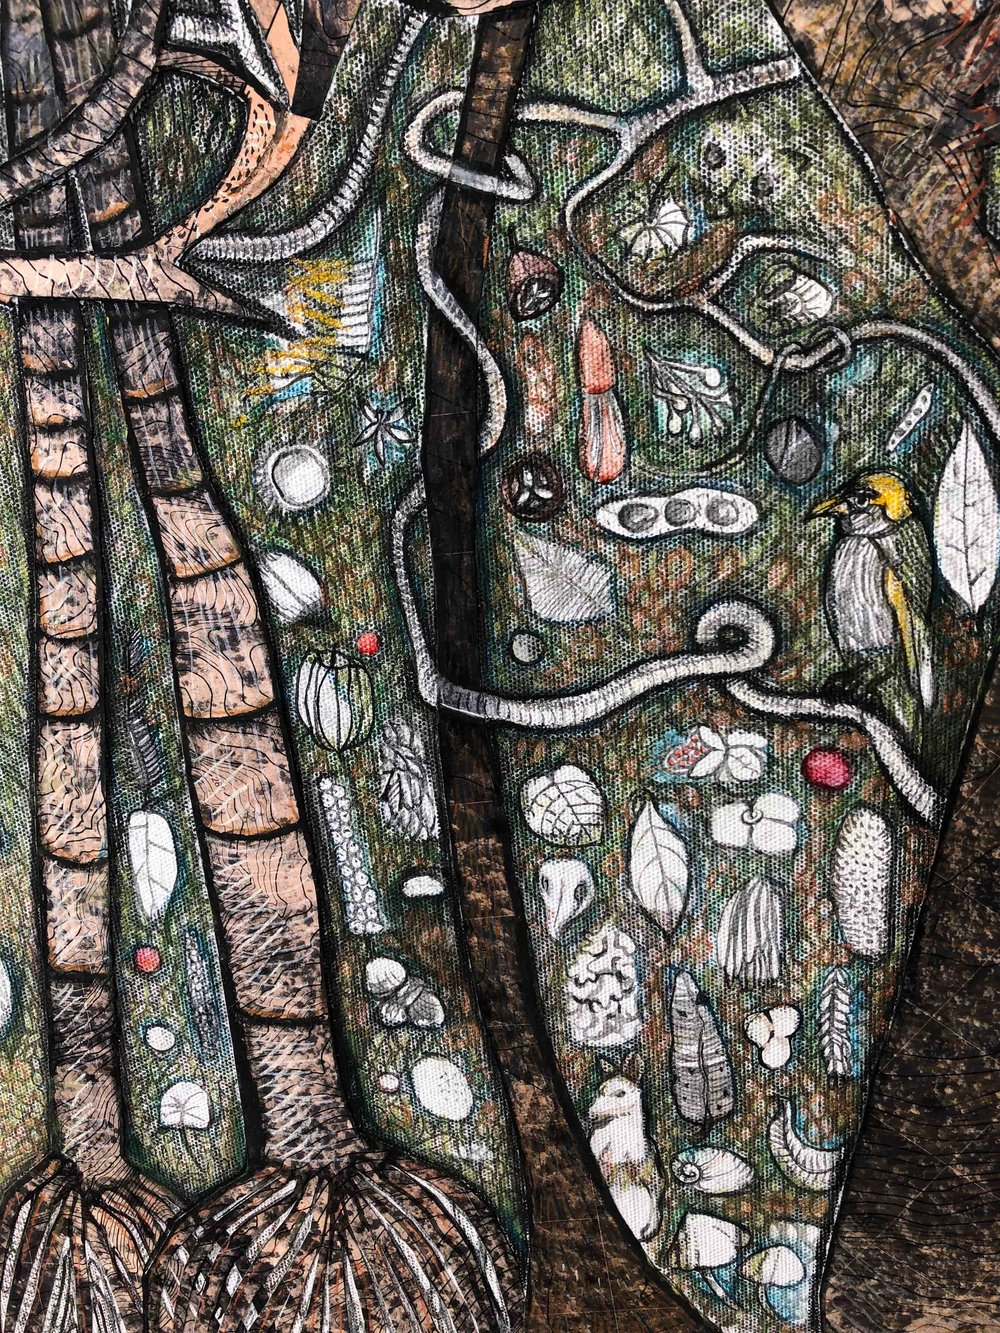 detail from 'seeing the forest for the trees'